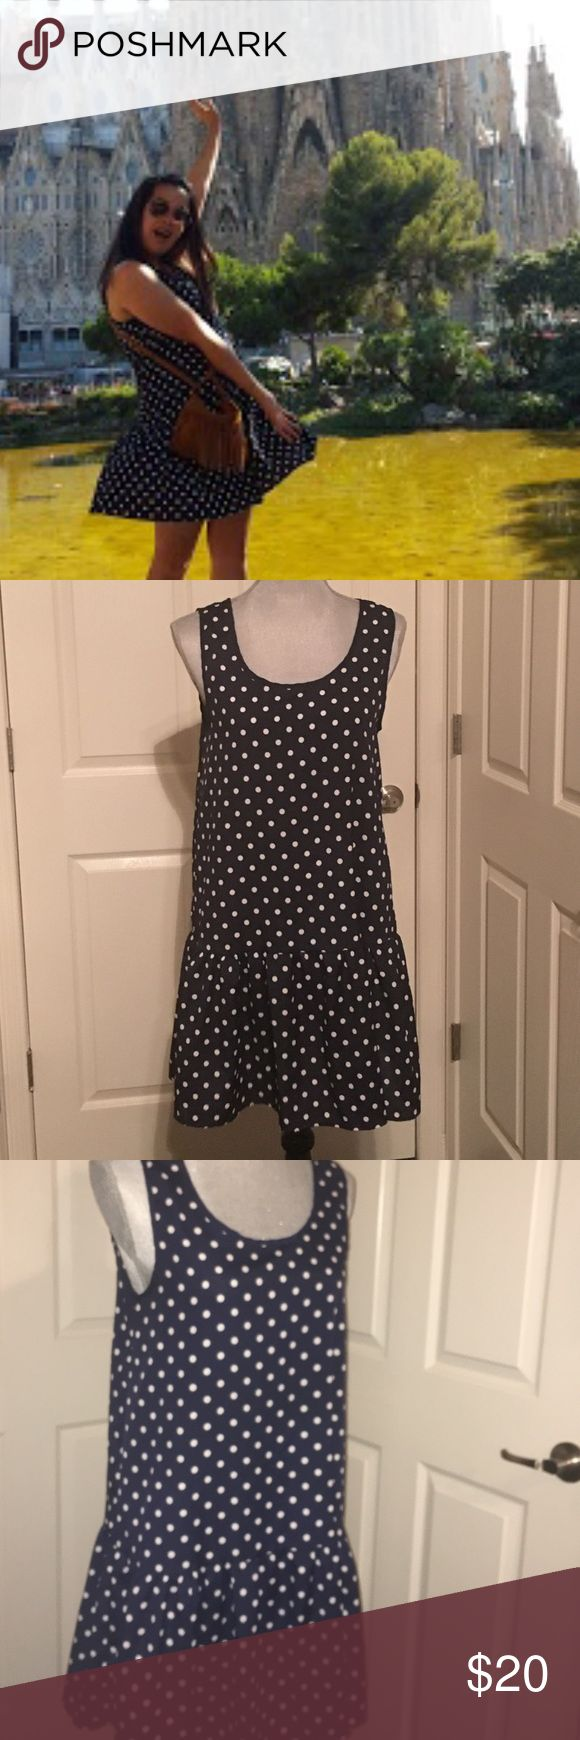 "💖SALE Cute Polk a dot drop waist dress It's navy and white. Drop waist. Seriously one of my favorite dresses but time to part with it :( it's 100% polyester. The brand is ""dee ella"" but I bought at Nordstrom. Made in the U.S. You won't find it anywhere. Still has a lot of life, and I'm going to miss it. 🚫low balling🚫 NO TRADES🚫 Nordstrom Dresses"